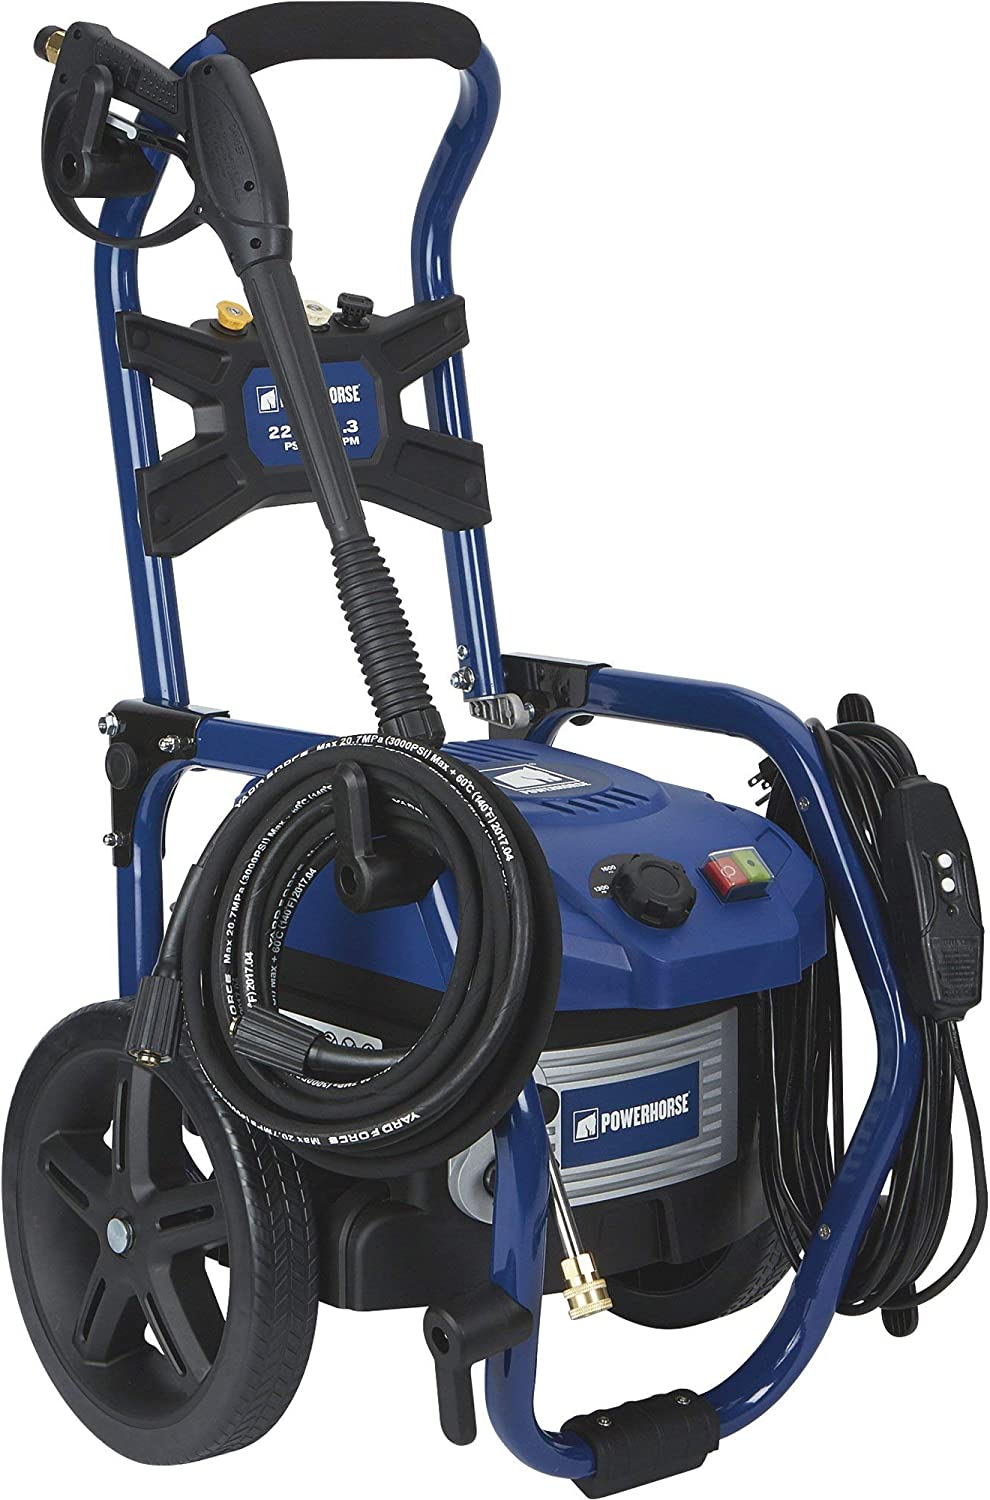 Powerhorse Brushless Portable Electric Pressure Washer Power Washer - 1.3 GPM, 2200 PSI